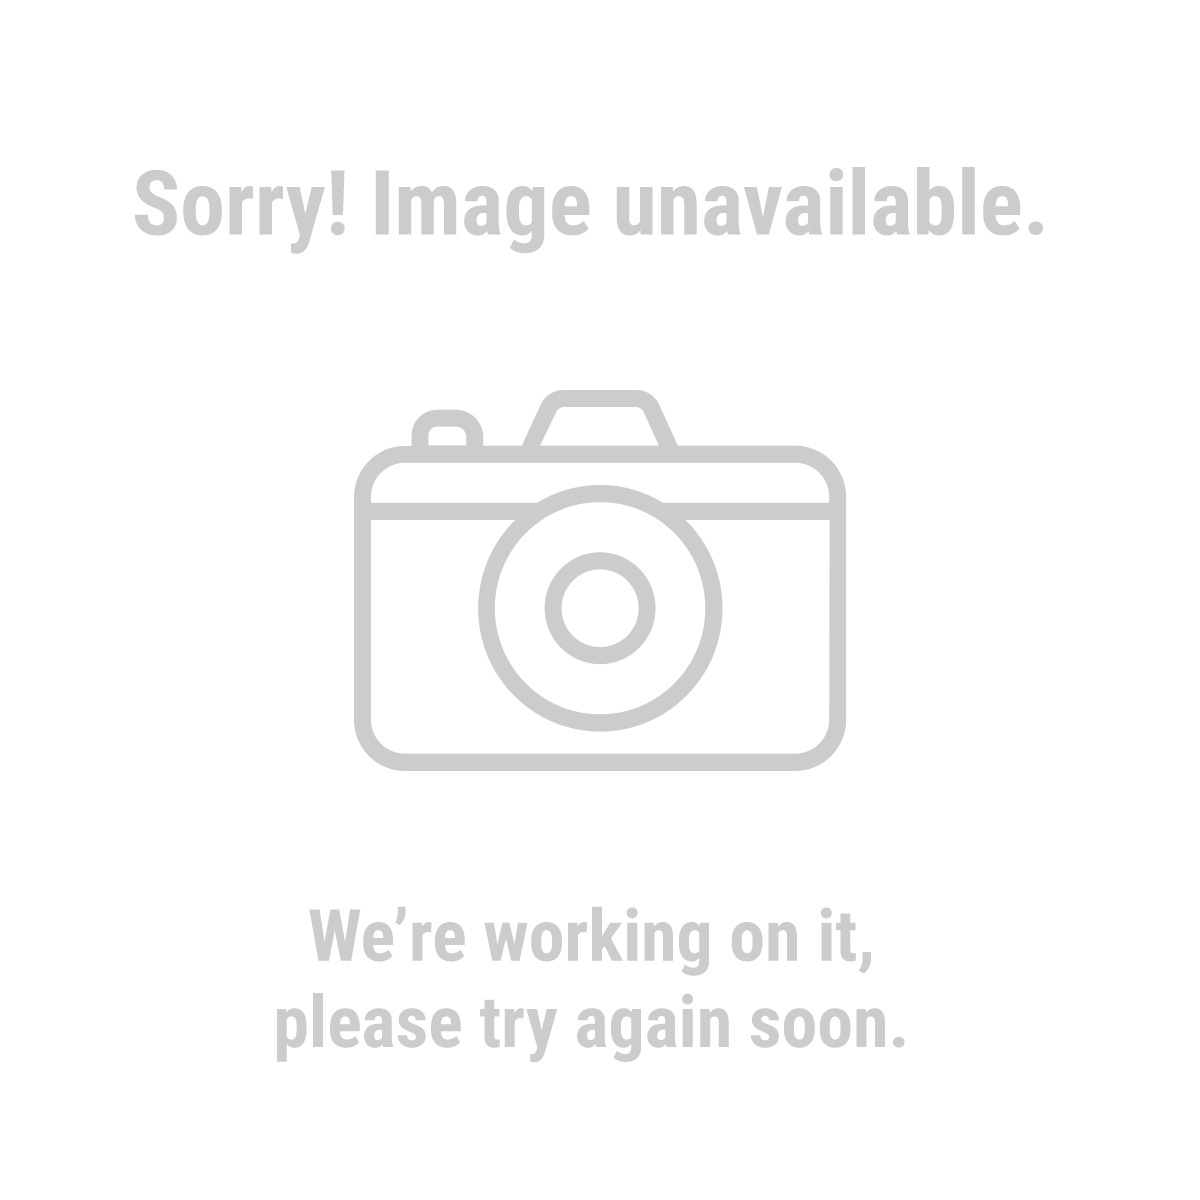 Storehouse 94456 18 Compartment Small Storage Container